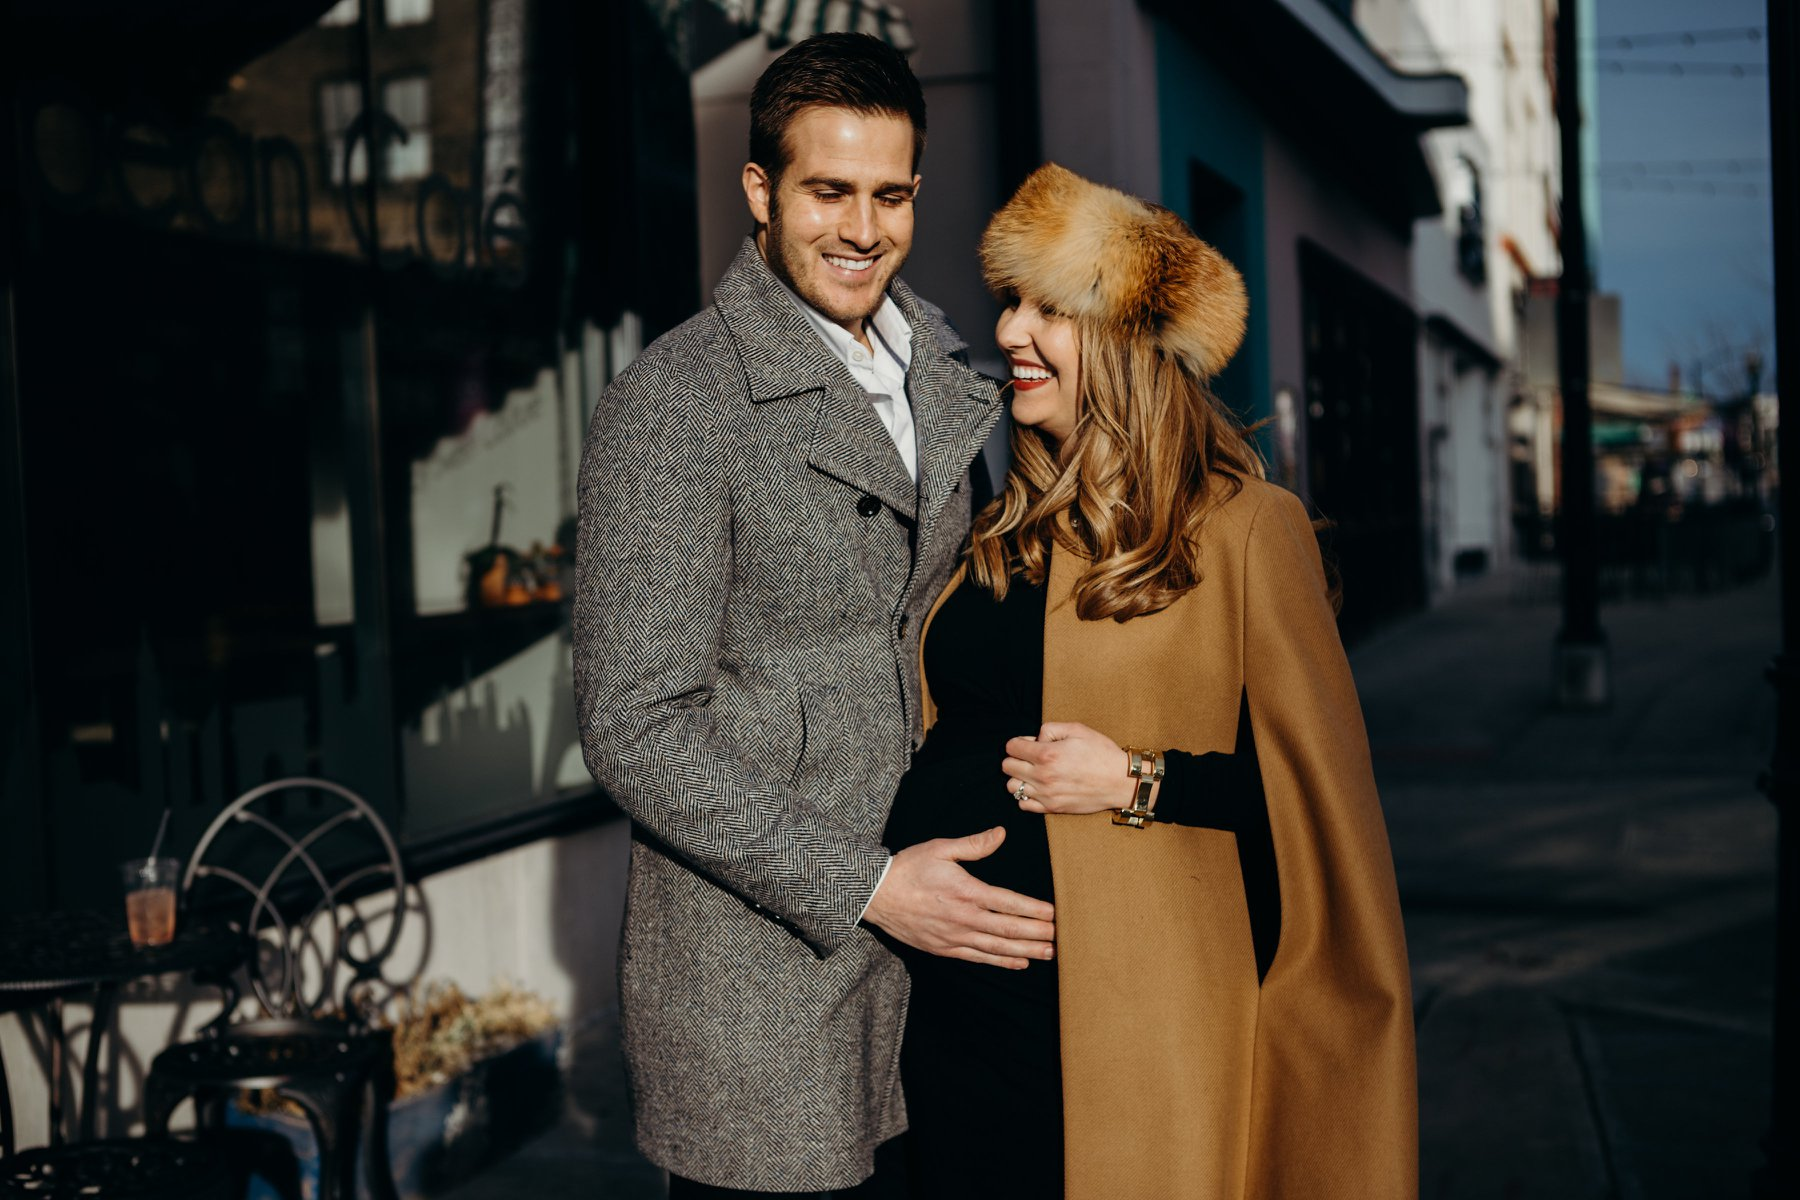 high fashion chic maternity session baby bump springfield missouri